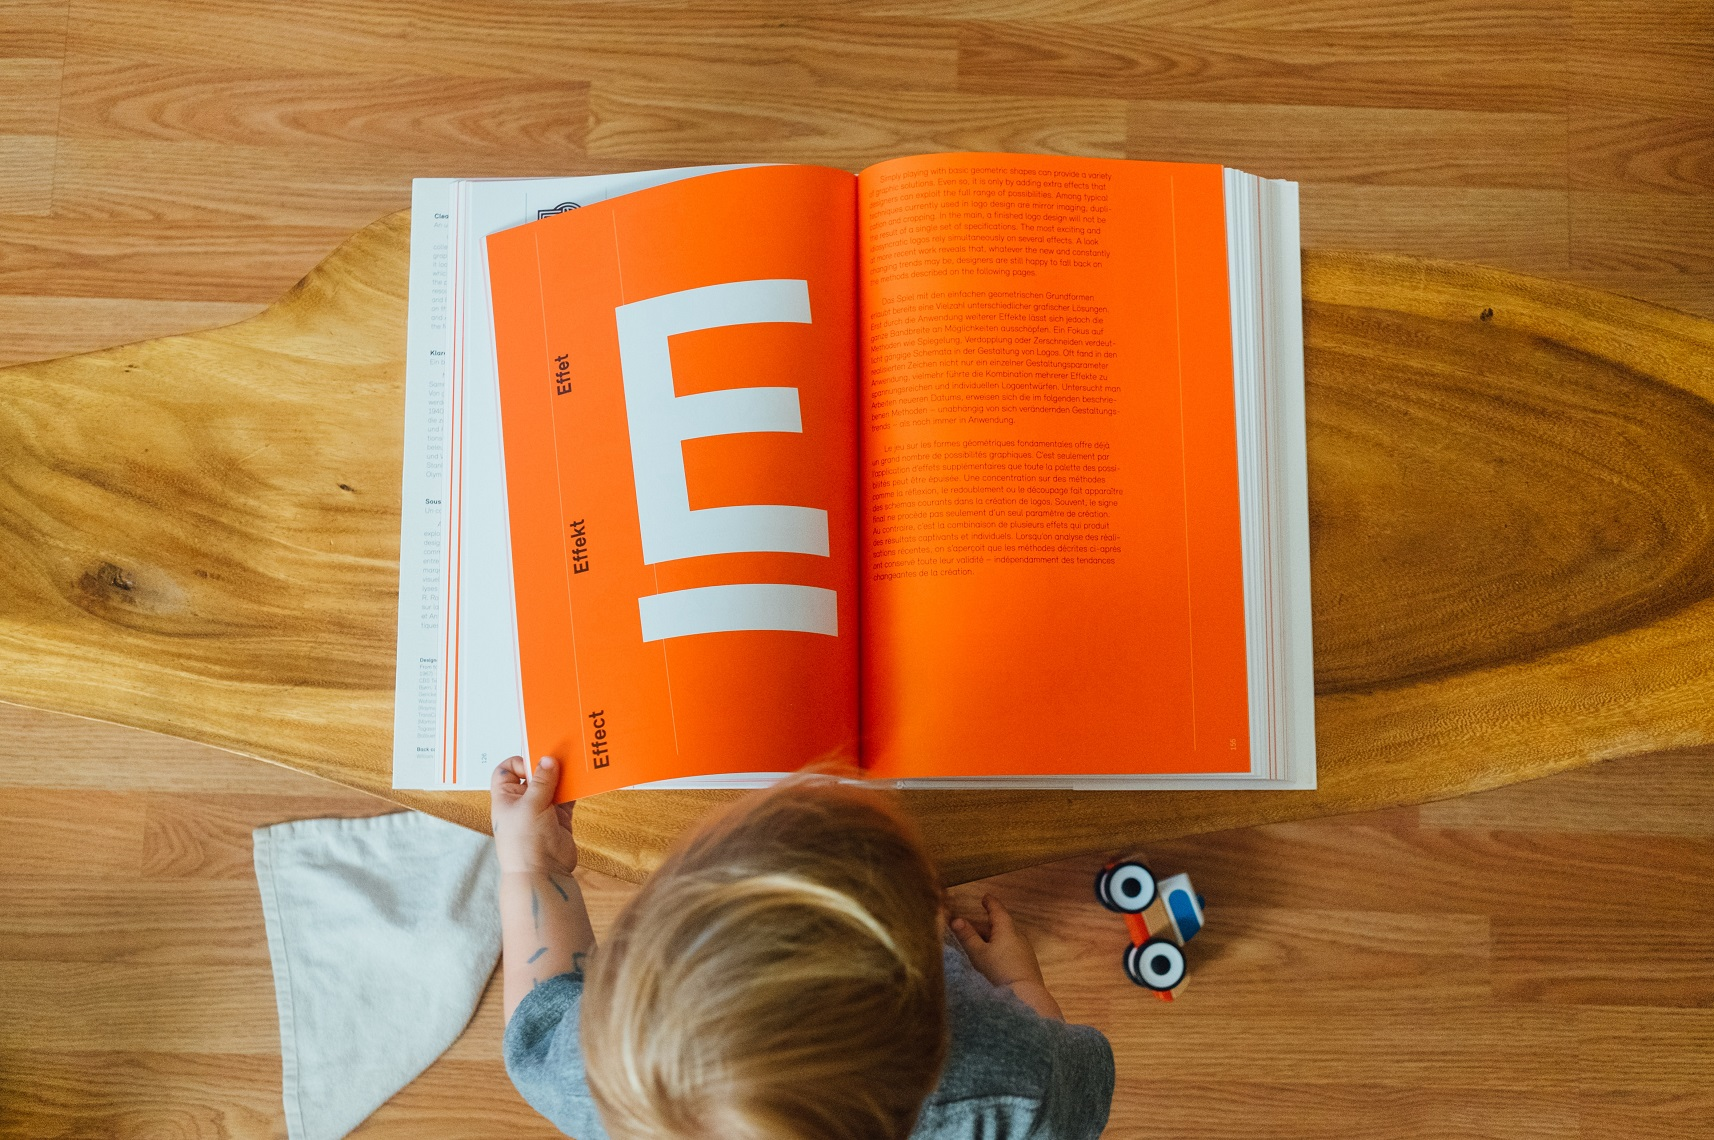 Top view of the Child holding an open book's page having a letter E on it, and a toy lying behind the book.